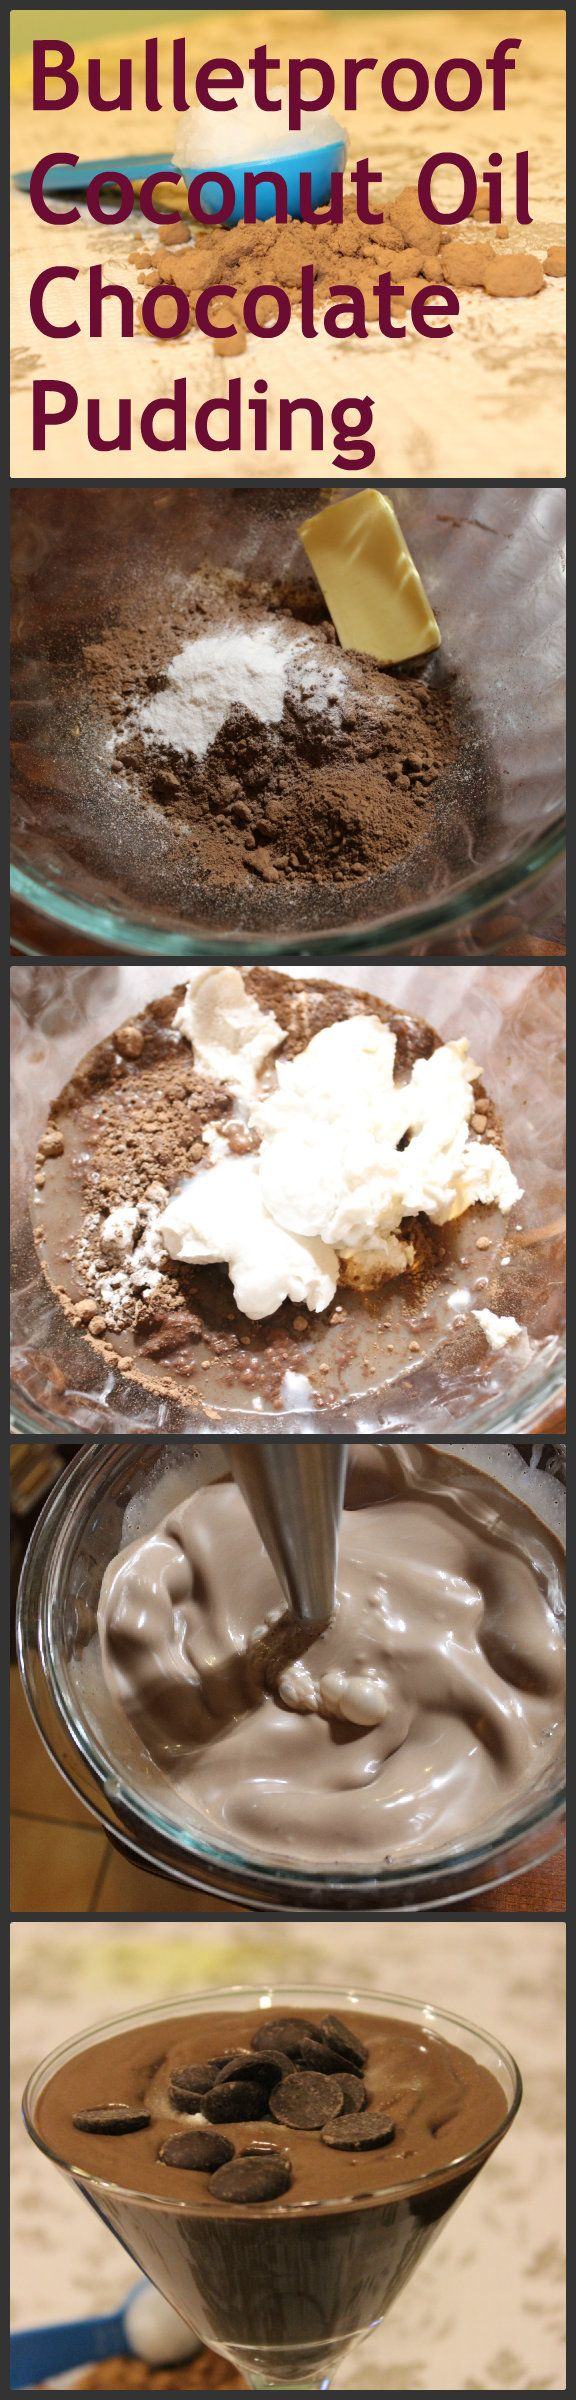 CHOCOLATE PUDDING made with coconut oil and cacao powder. Gluten-free.  2 cups coconut milk, 2 tablespoons Stevia, 1 tbsp protein powder of choice, 1 teaspoons vanilla extract, 3/8 cup cacao powder, 2 tbsp unsalted butter, 1 tbsp coconut oil.  Heat 1 cup of coconut oil, stevia, and protein powder until dissolved. Set aside. Combine remaining ingredients and blend well. Add warmed mixture and blend again. Refrigerate and enjoy!